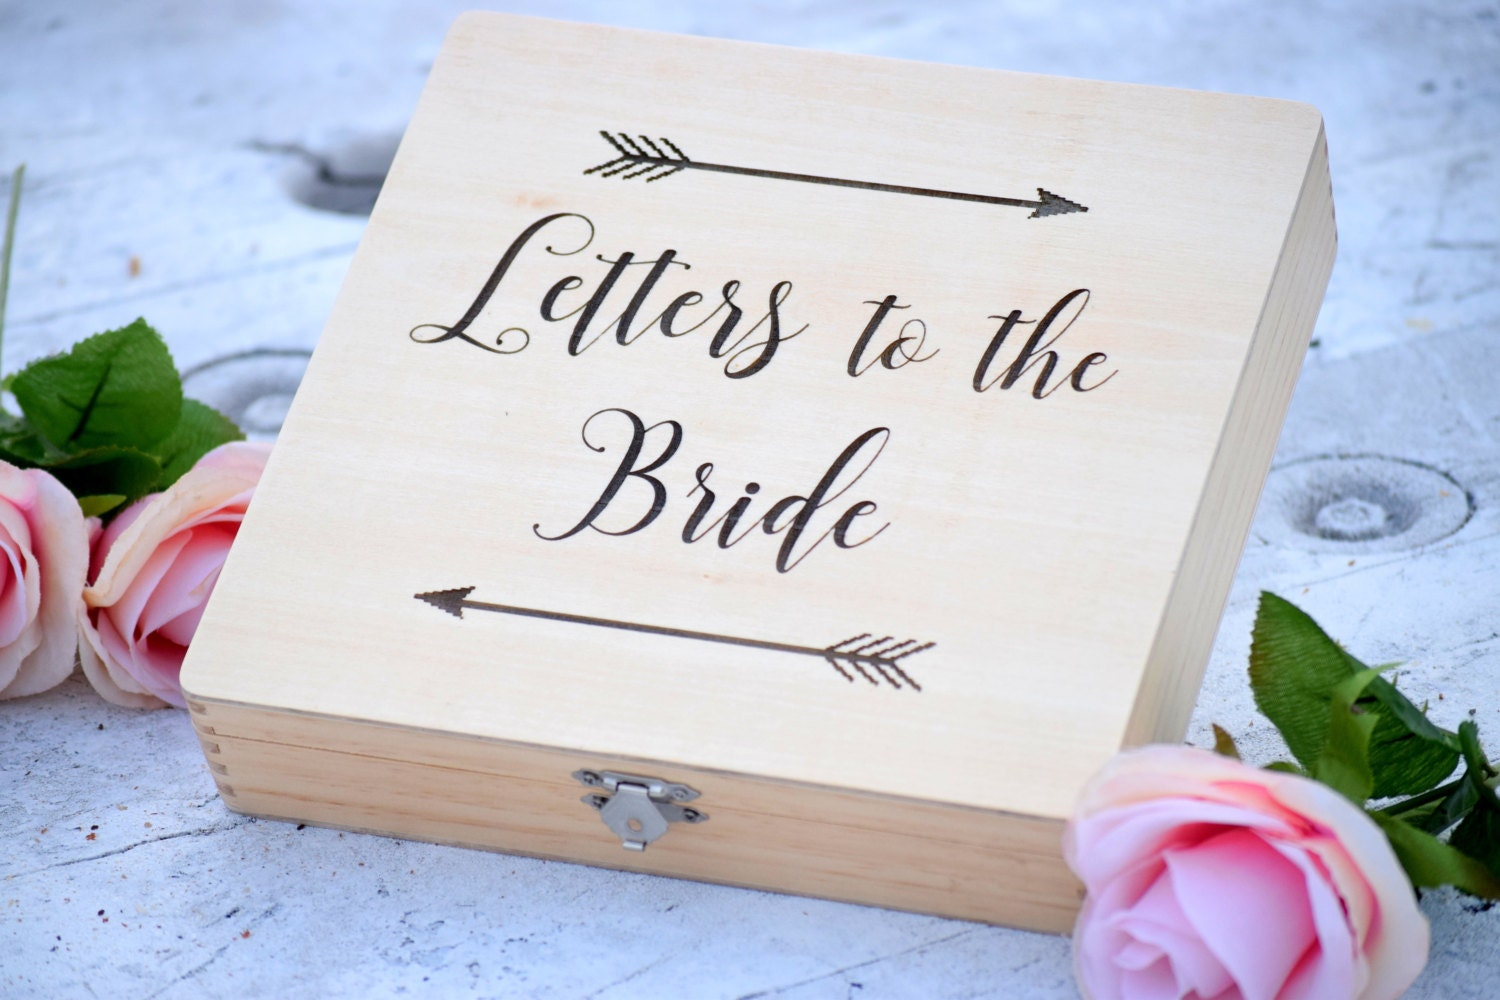 Letters To The Bride Box Bridal Box Gifts For The Bride